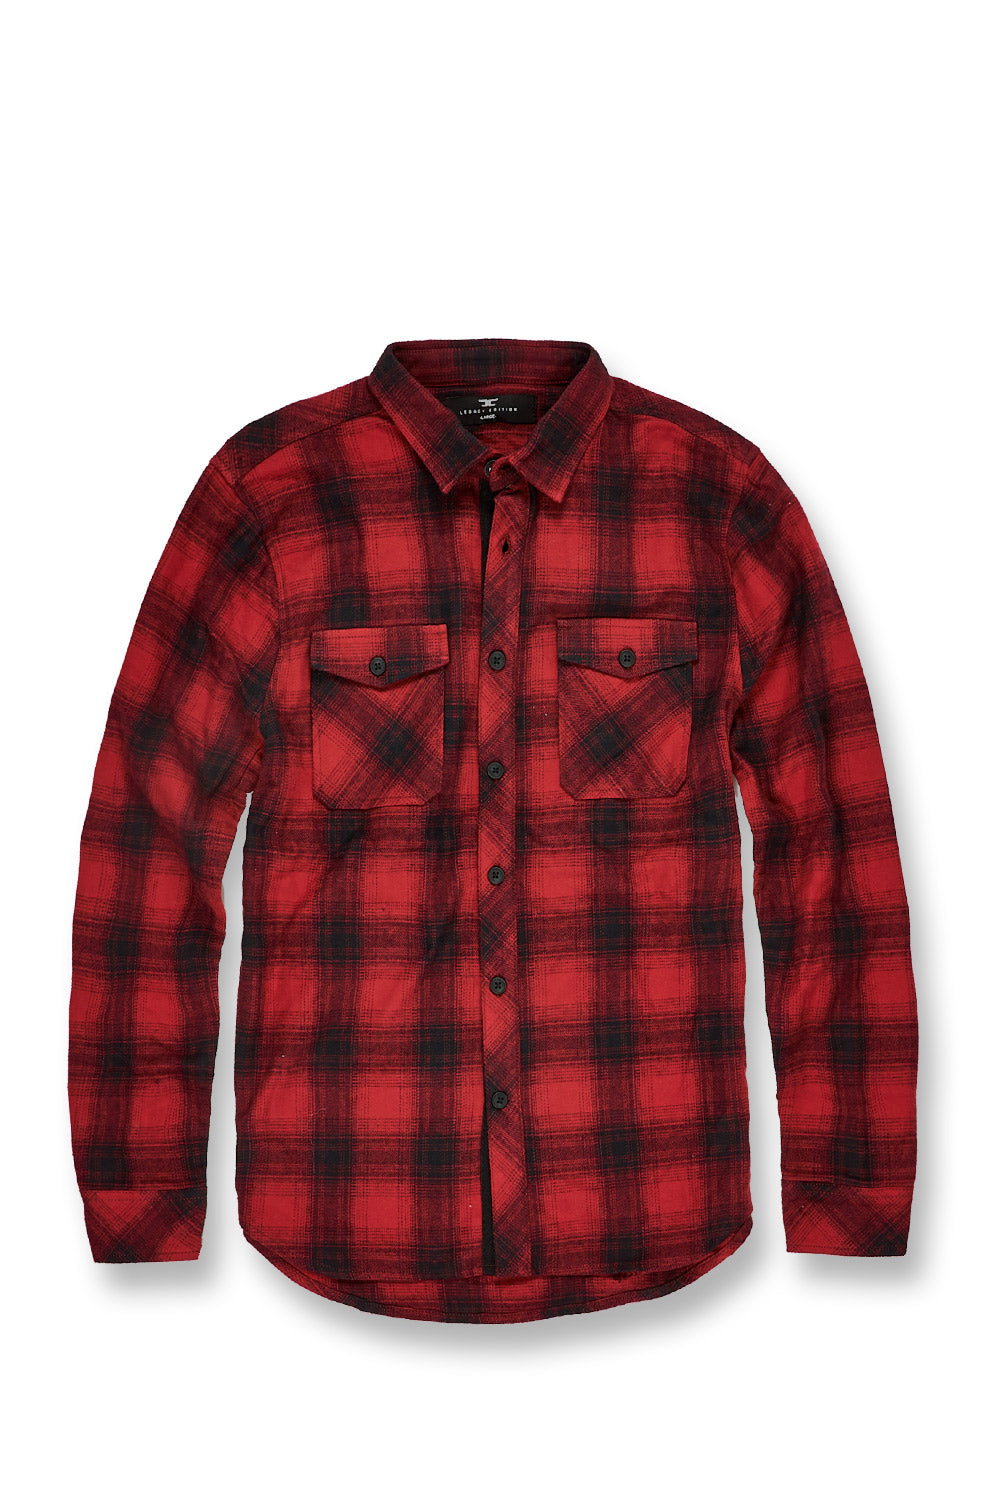 Tacoma Flannel Shirt (Red)